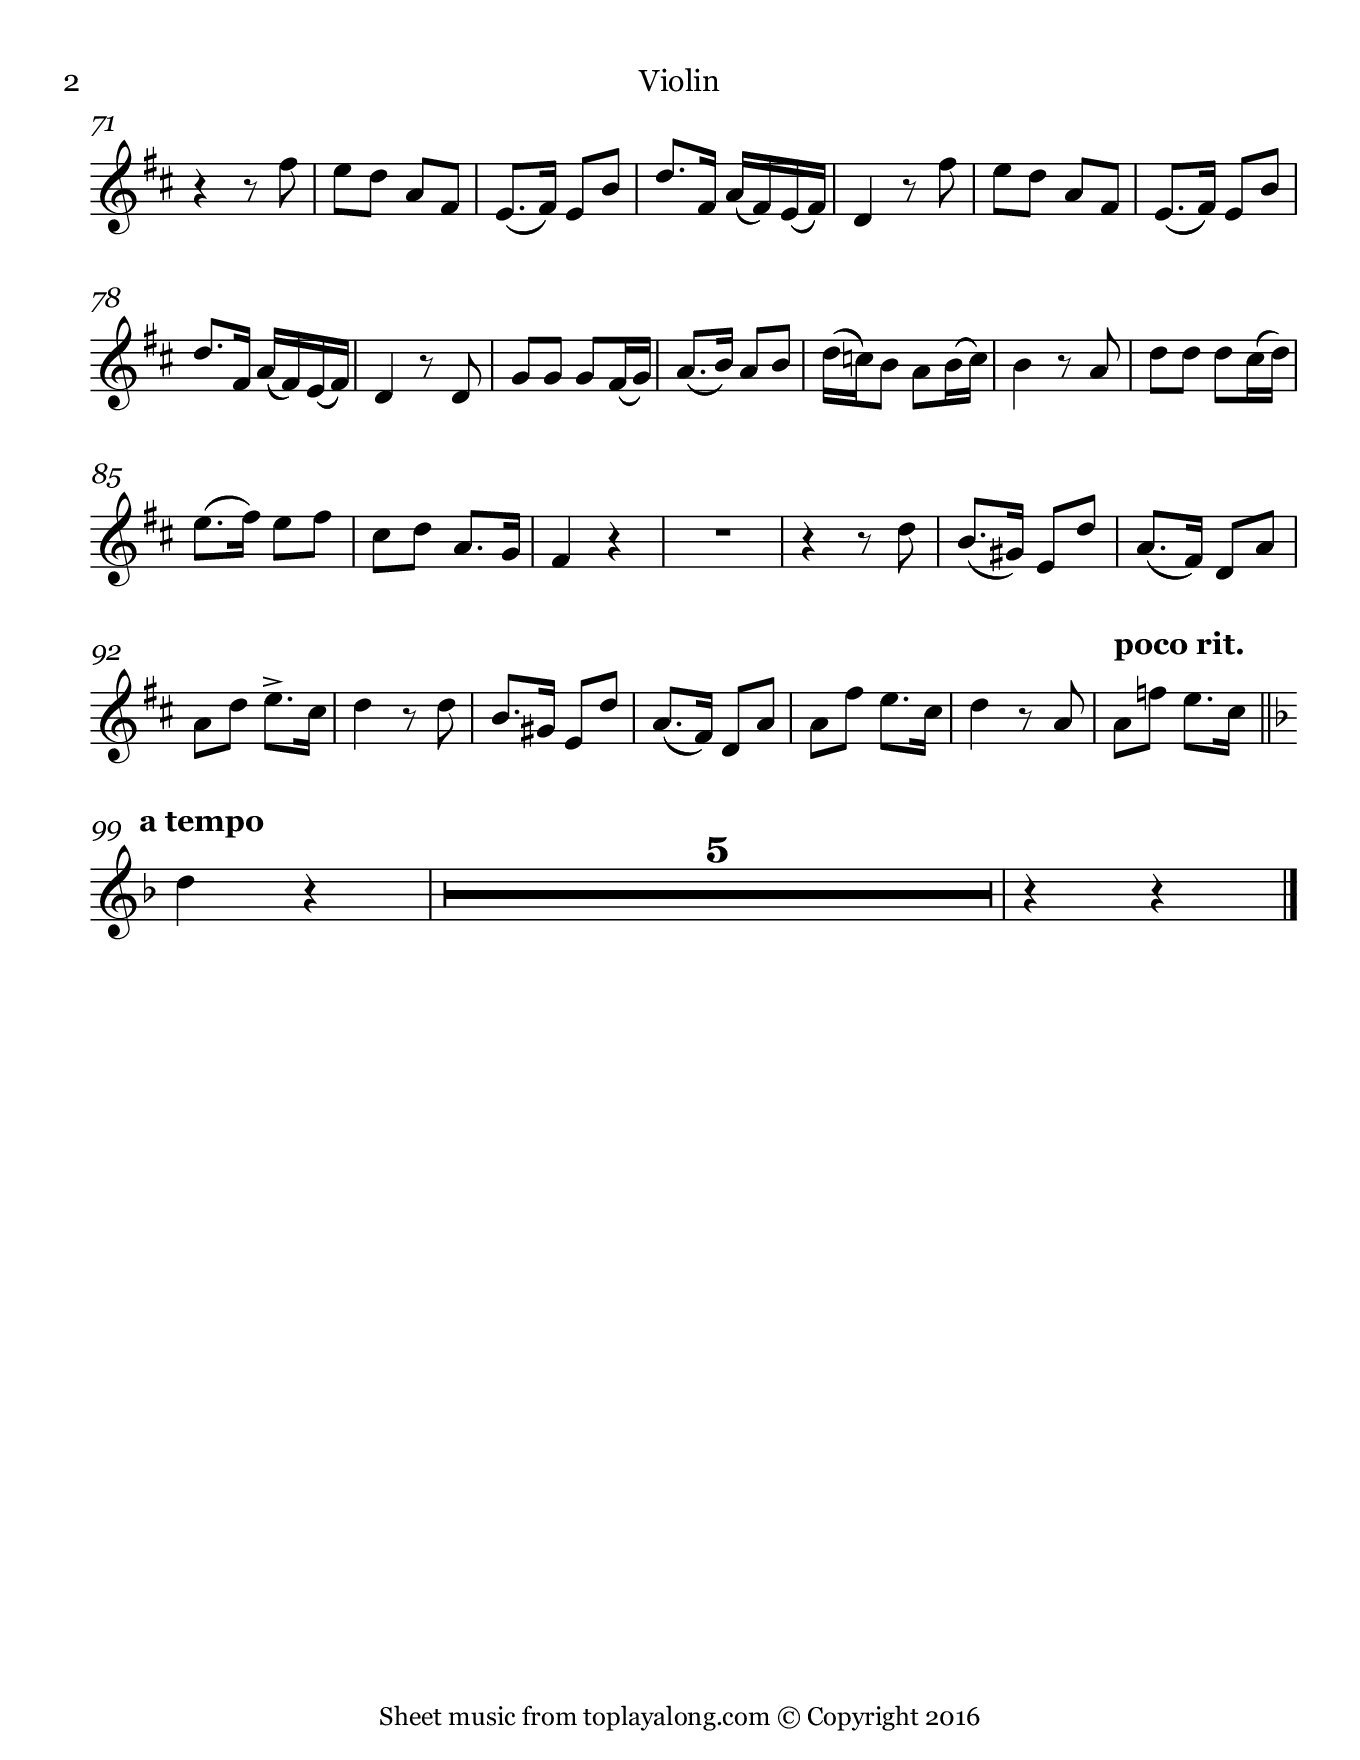 Gute Nacht from Winterreise by Schubert. Sheet music for Violin, page 2.